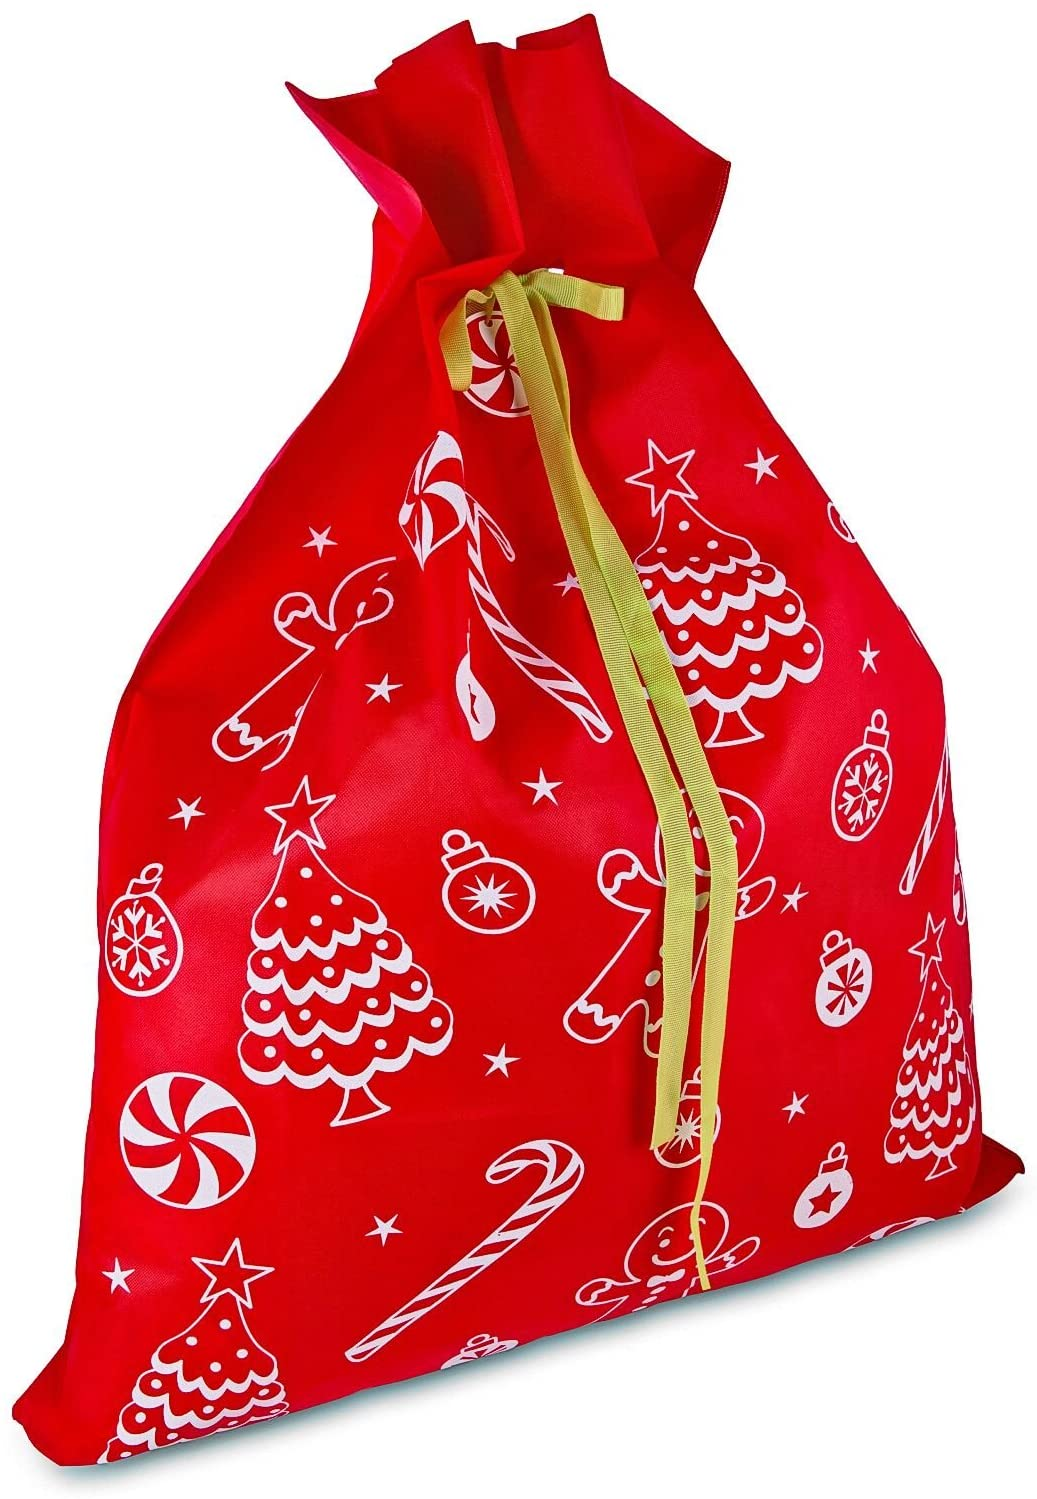 Exquisite Christmas Day Decoration Santa Large Sack Stocking Big Gift bags HO HO Christmas Santa Claus Xmas Gifts navidad bags